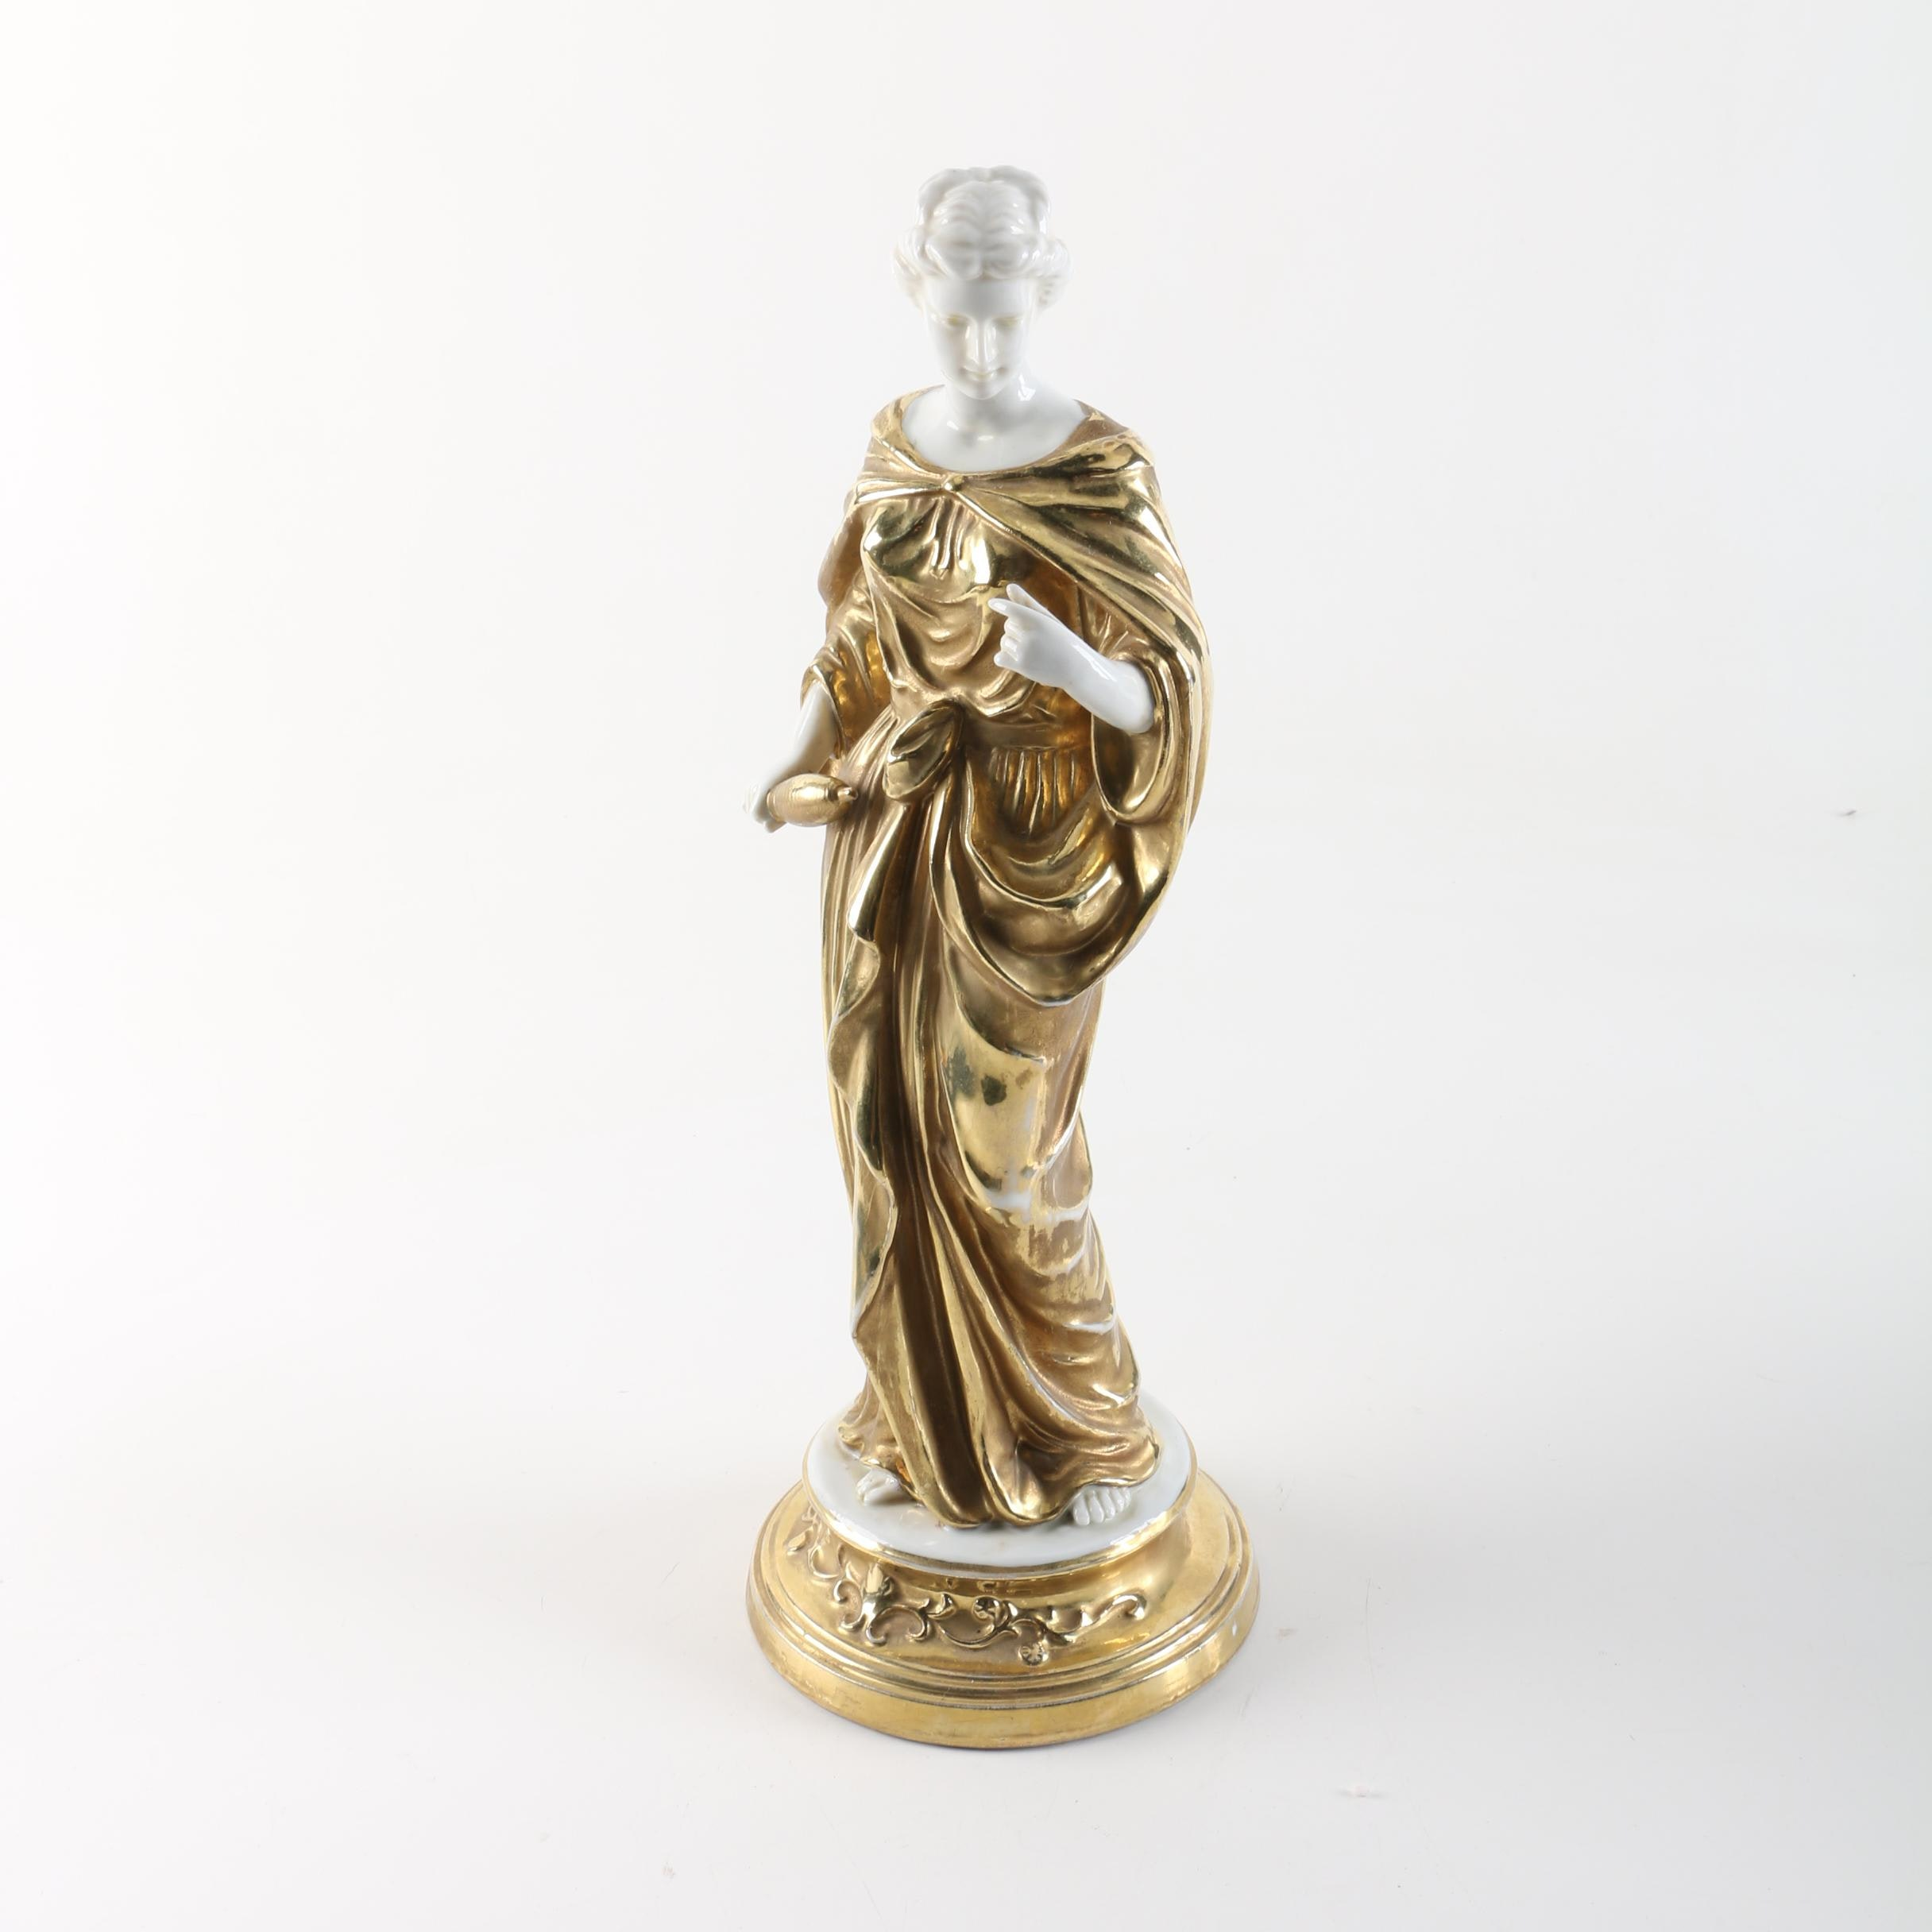 Classical Style Porcelain Figurine of Woman with Gold Tone Robes